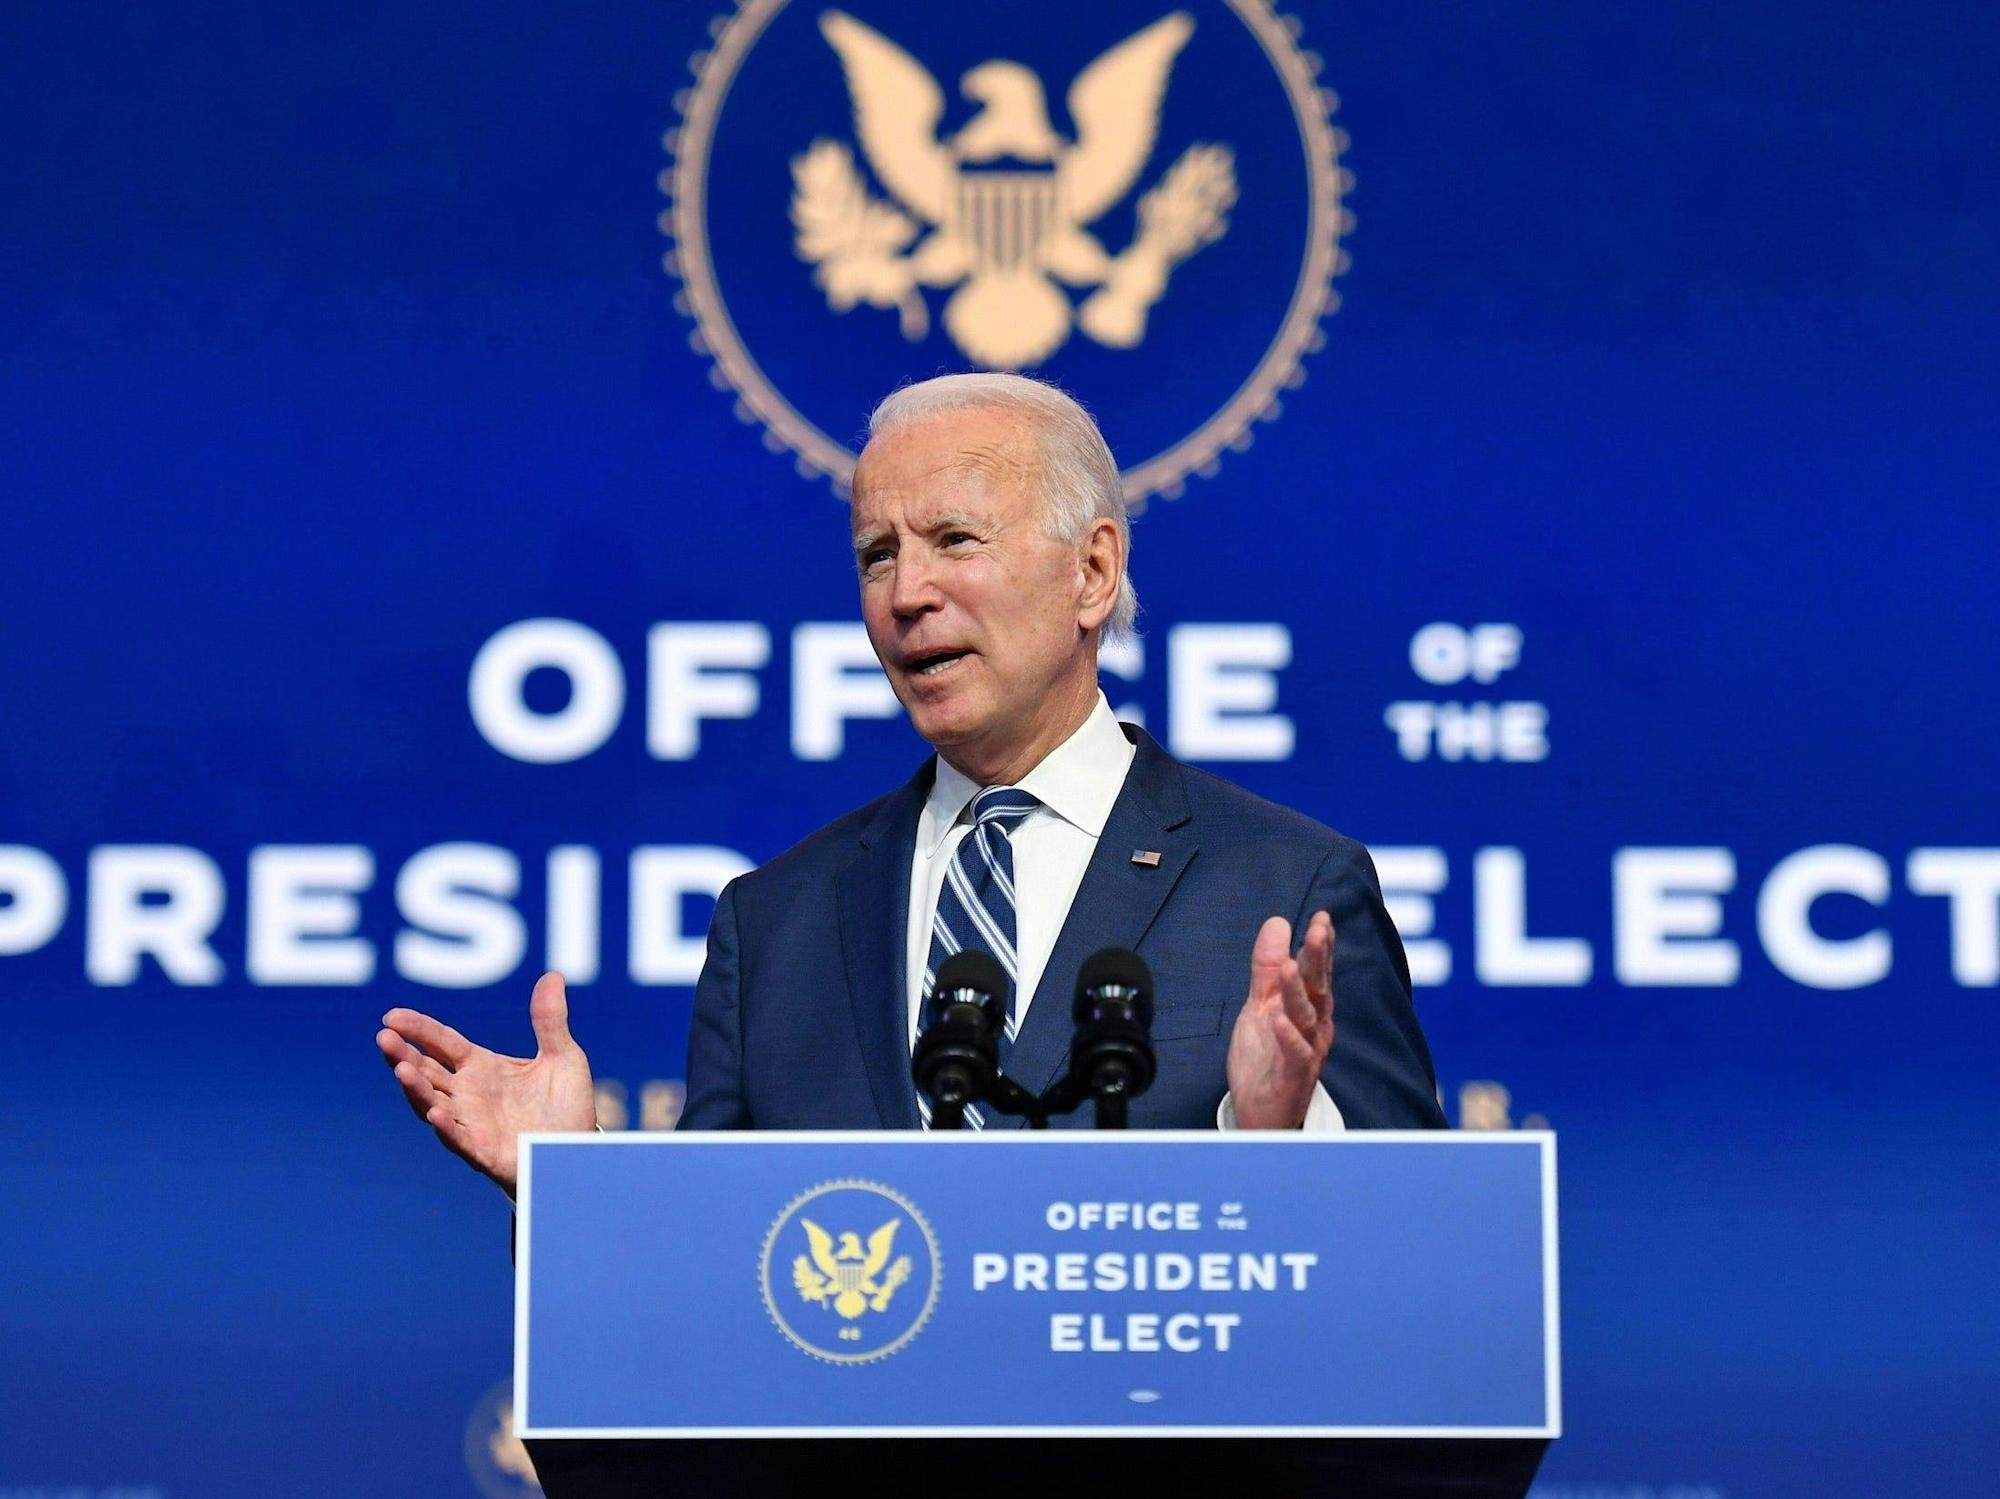 The Trump administration is reportedly withholding a stack of messages from foreign leaders to President-elect Joe Biden